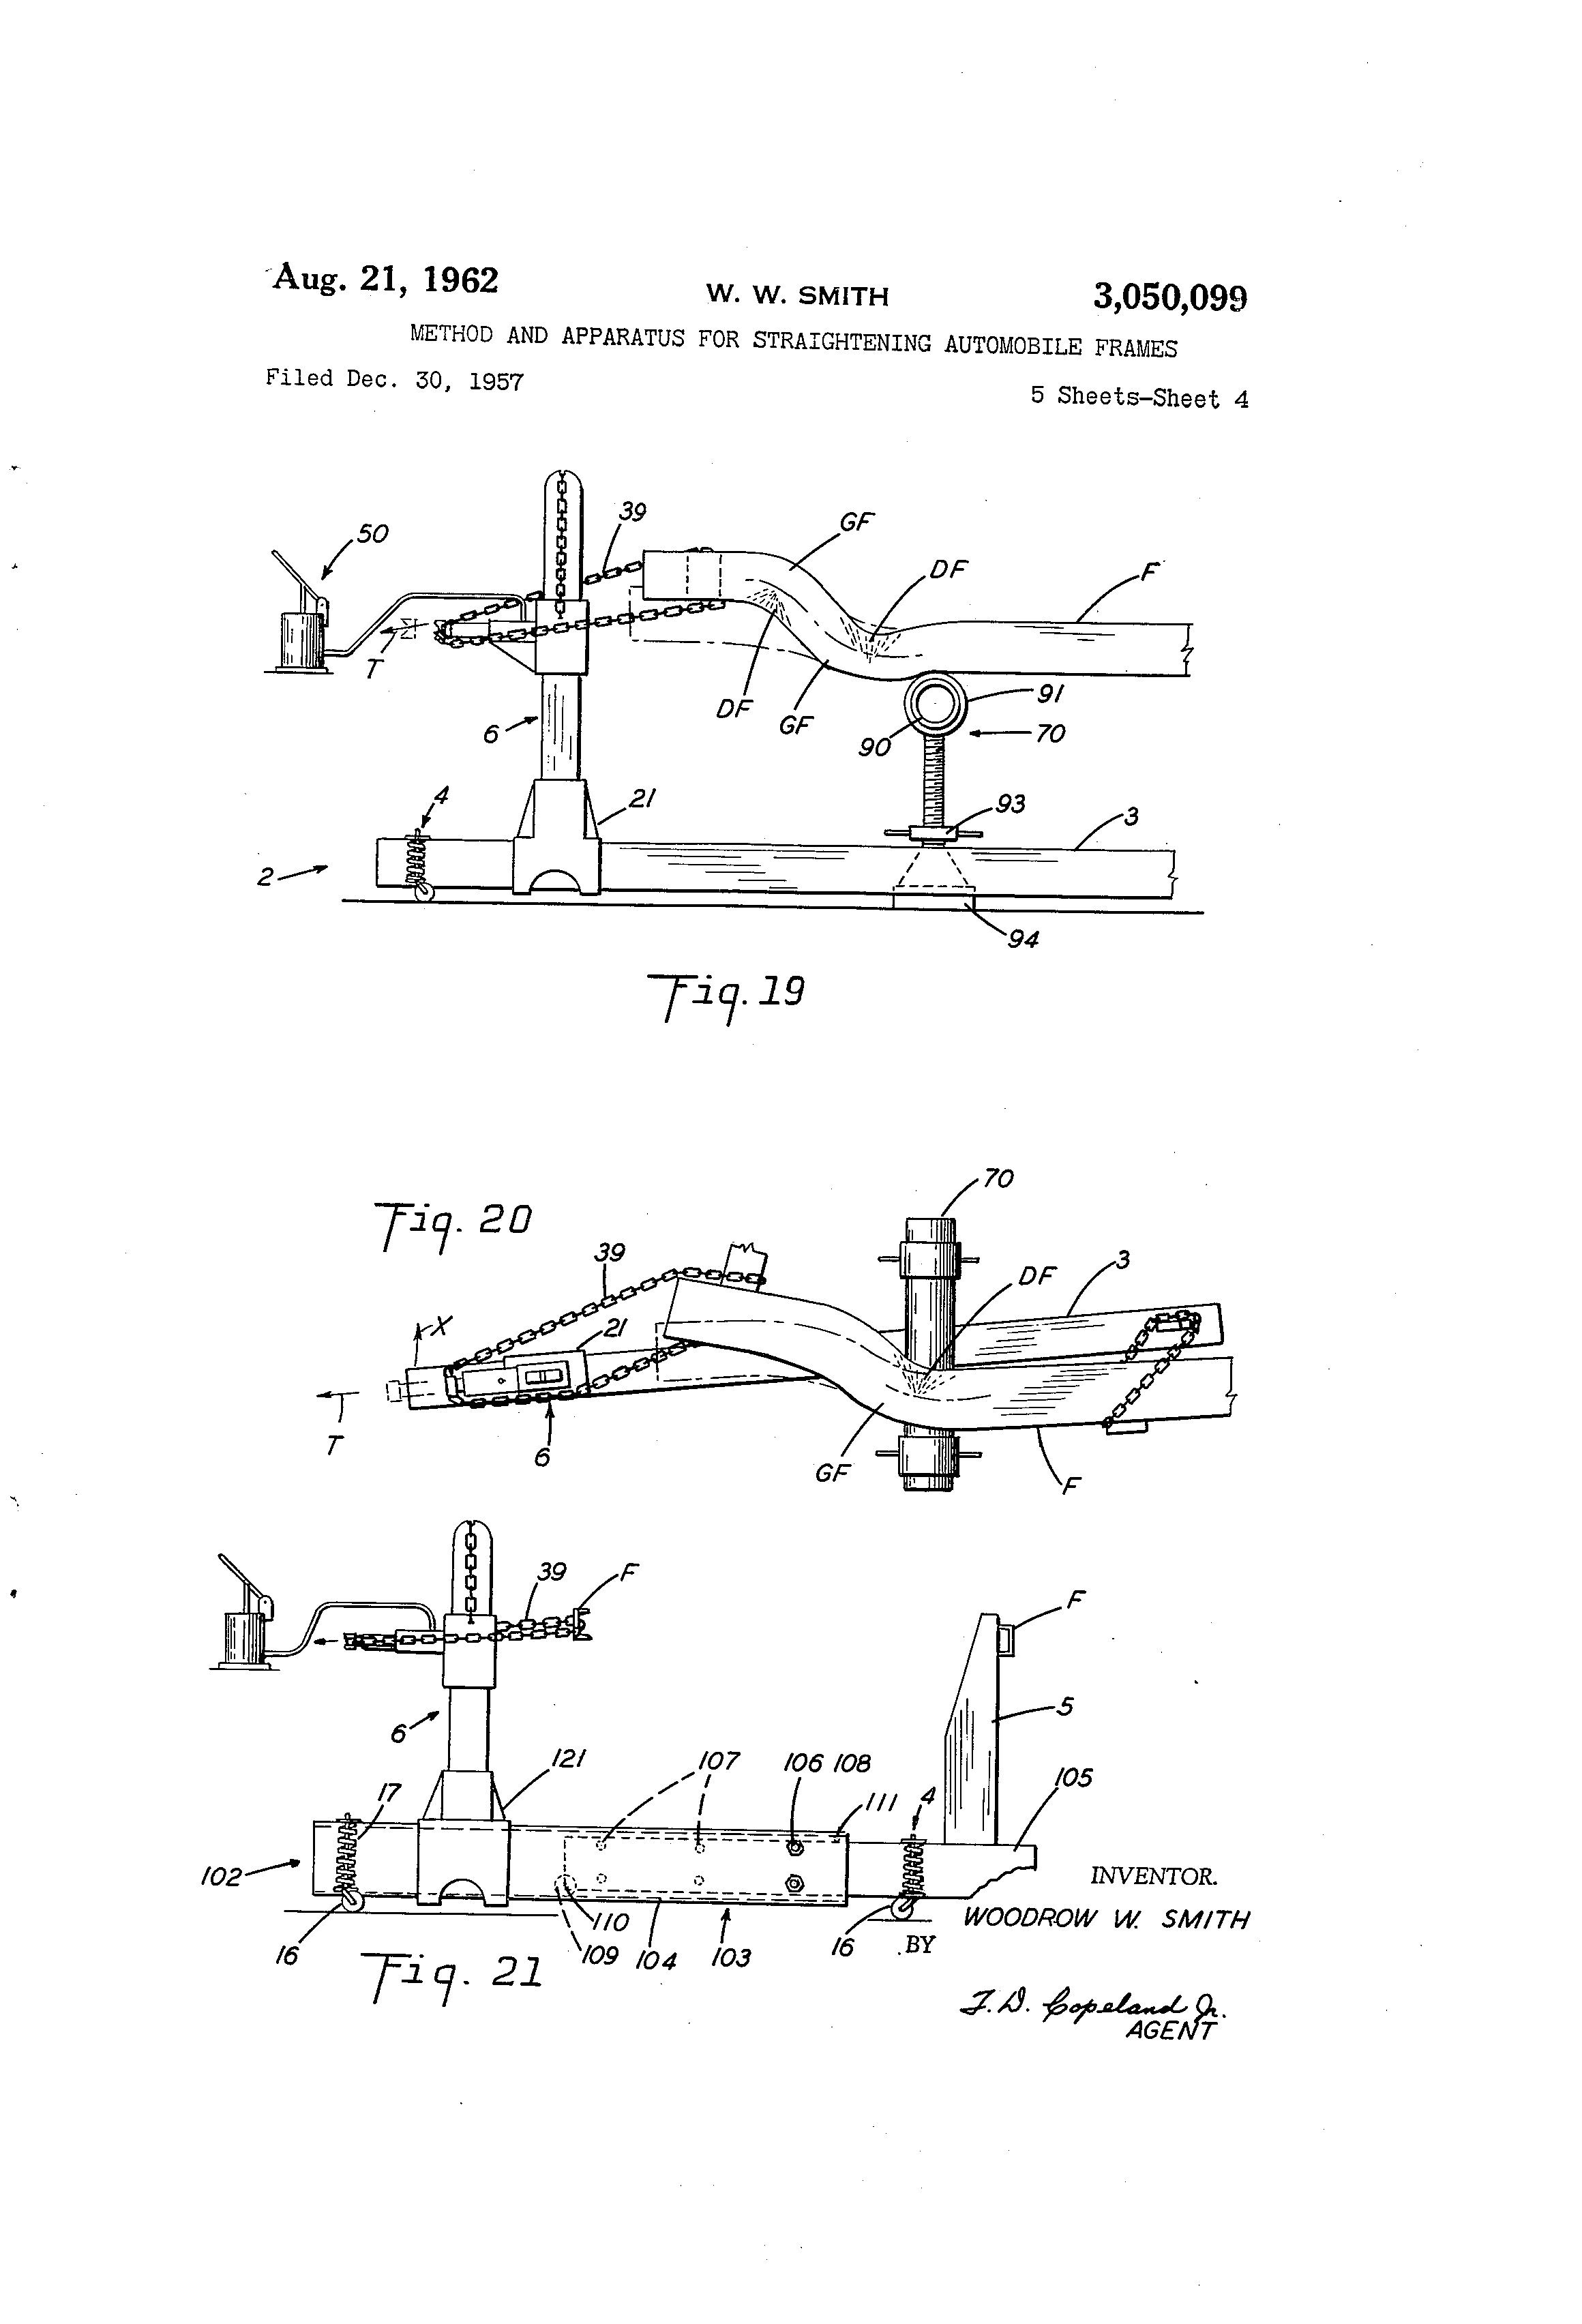 hight resolution of us3050099a method and apparatus for straightening automobile frames google patents